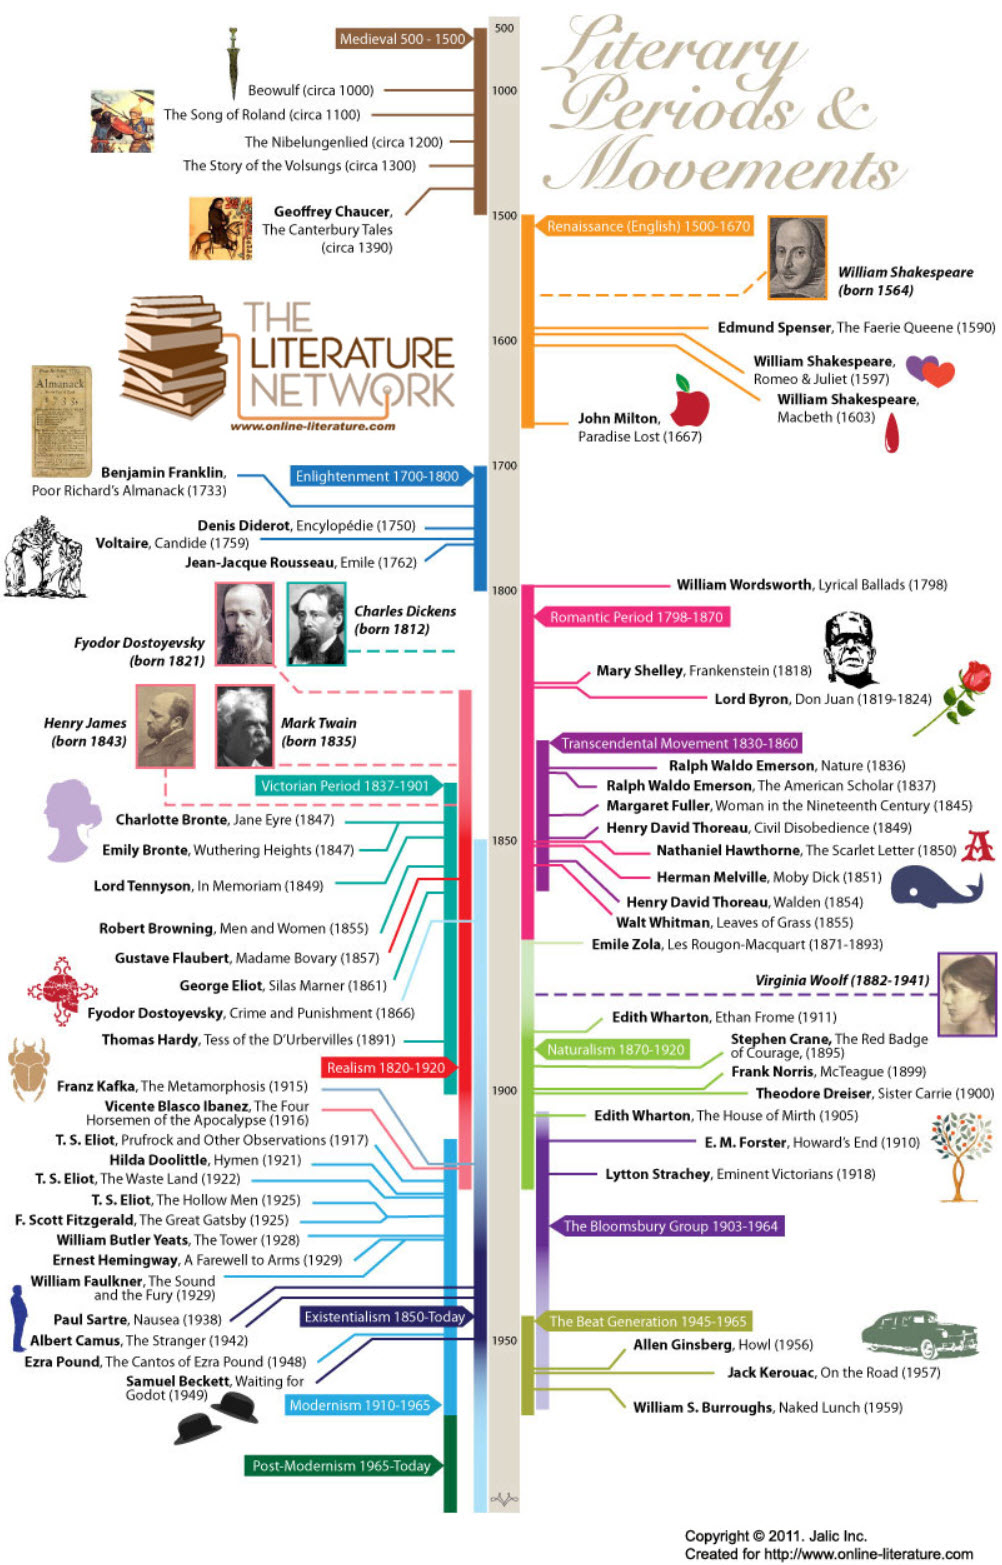 from https://www.online-literature.com/, Literary Periods & History Timeline